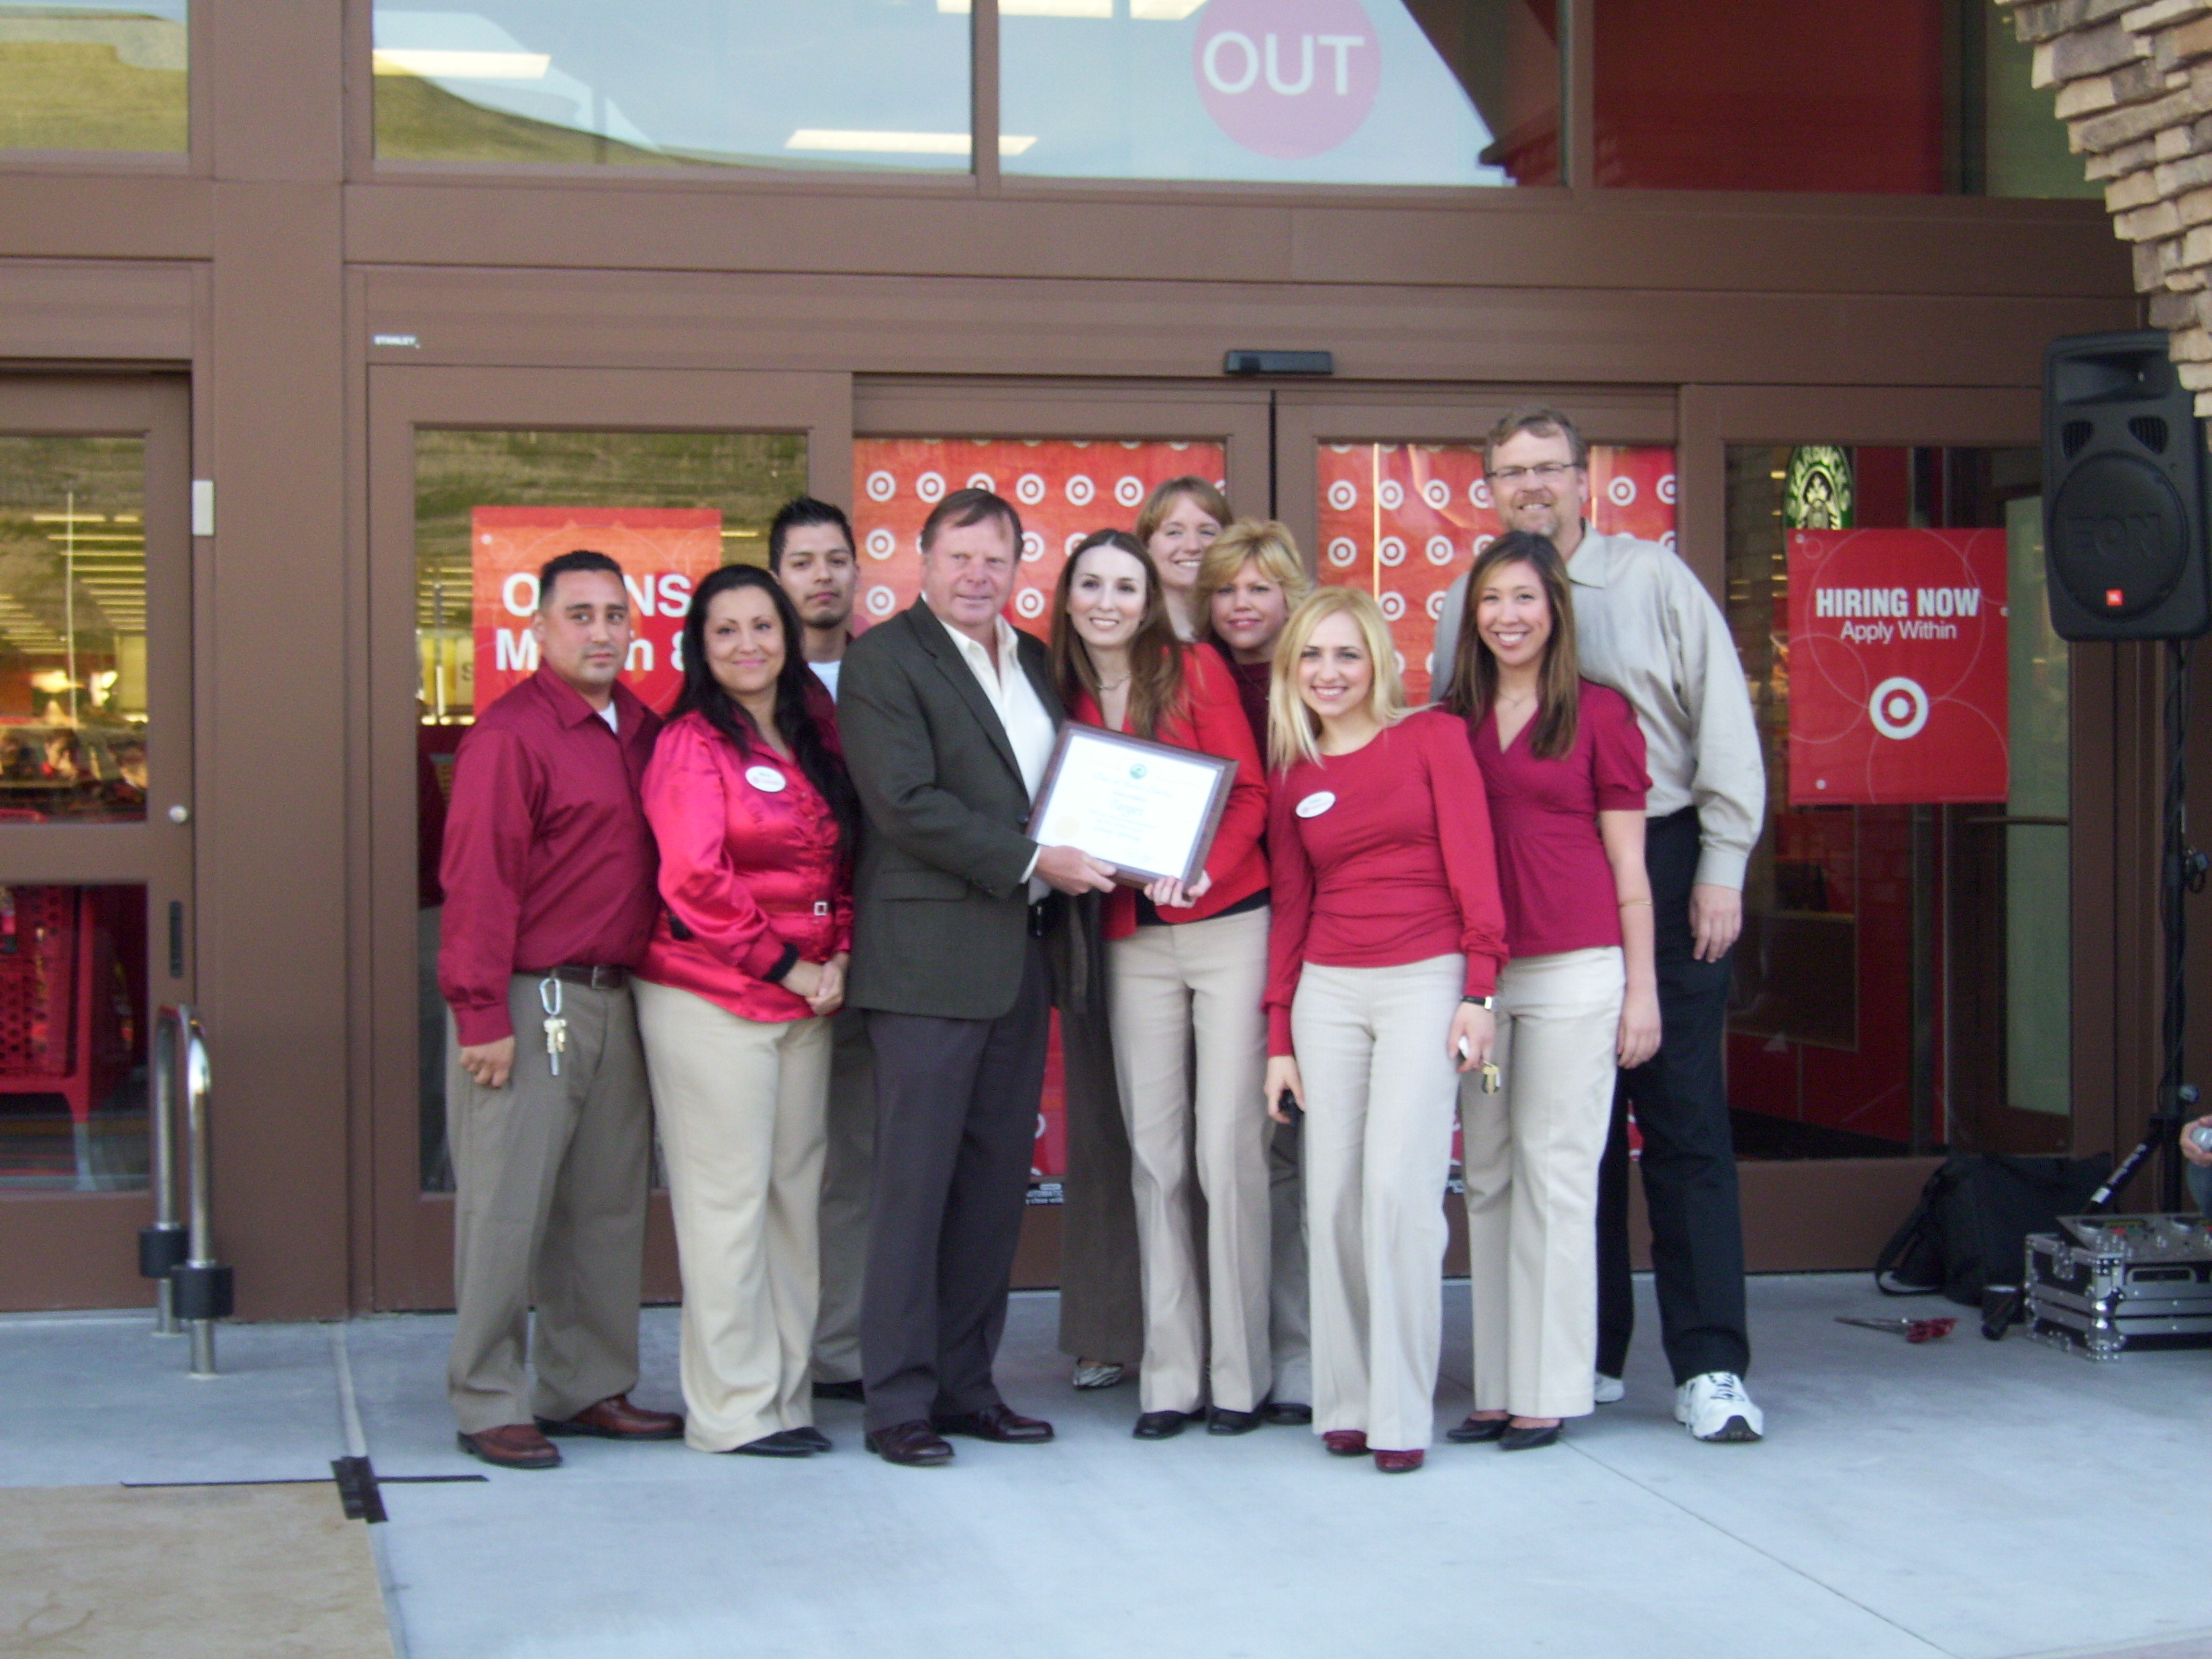 Mayor Ferry and Councilmember Bob Kellar helped cut the ribbon for the new Target in Canyon Country